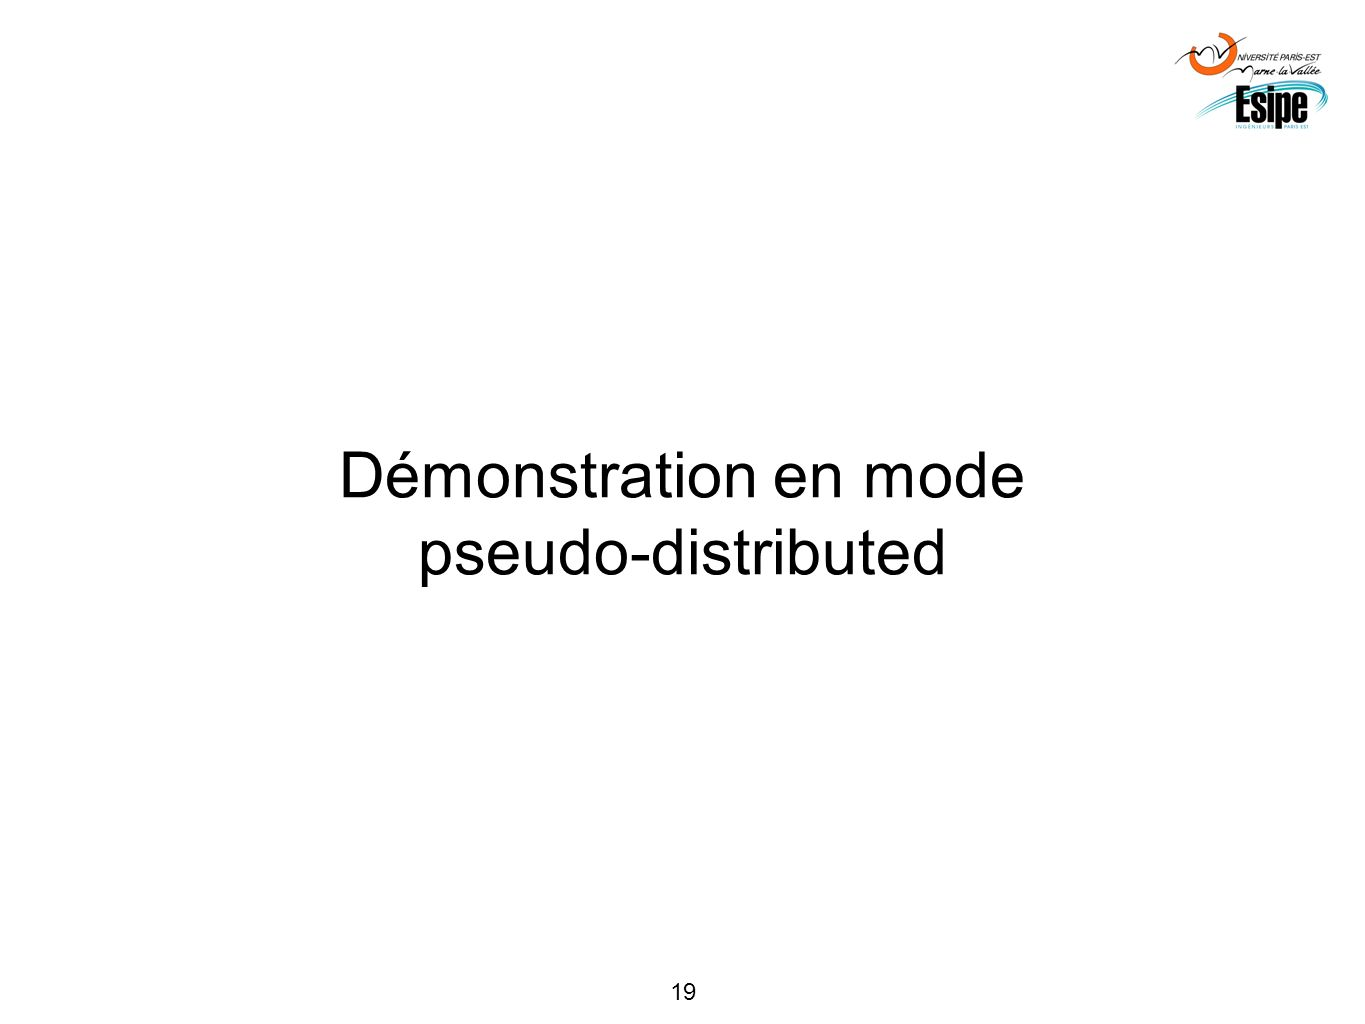 Démonstration en mode pseudo-distributed